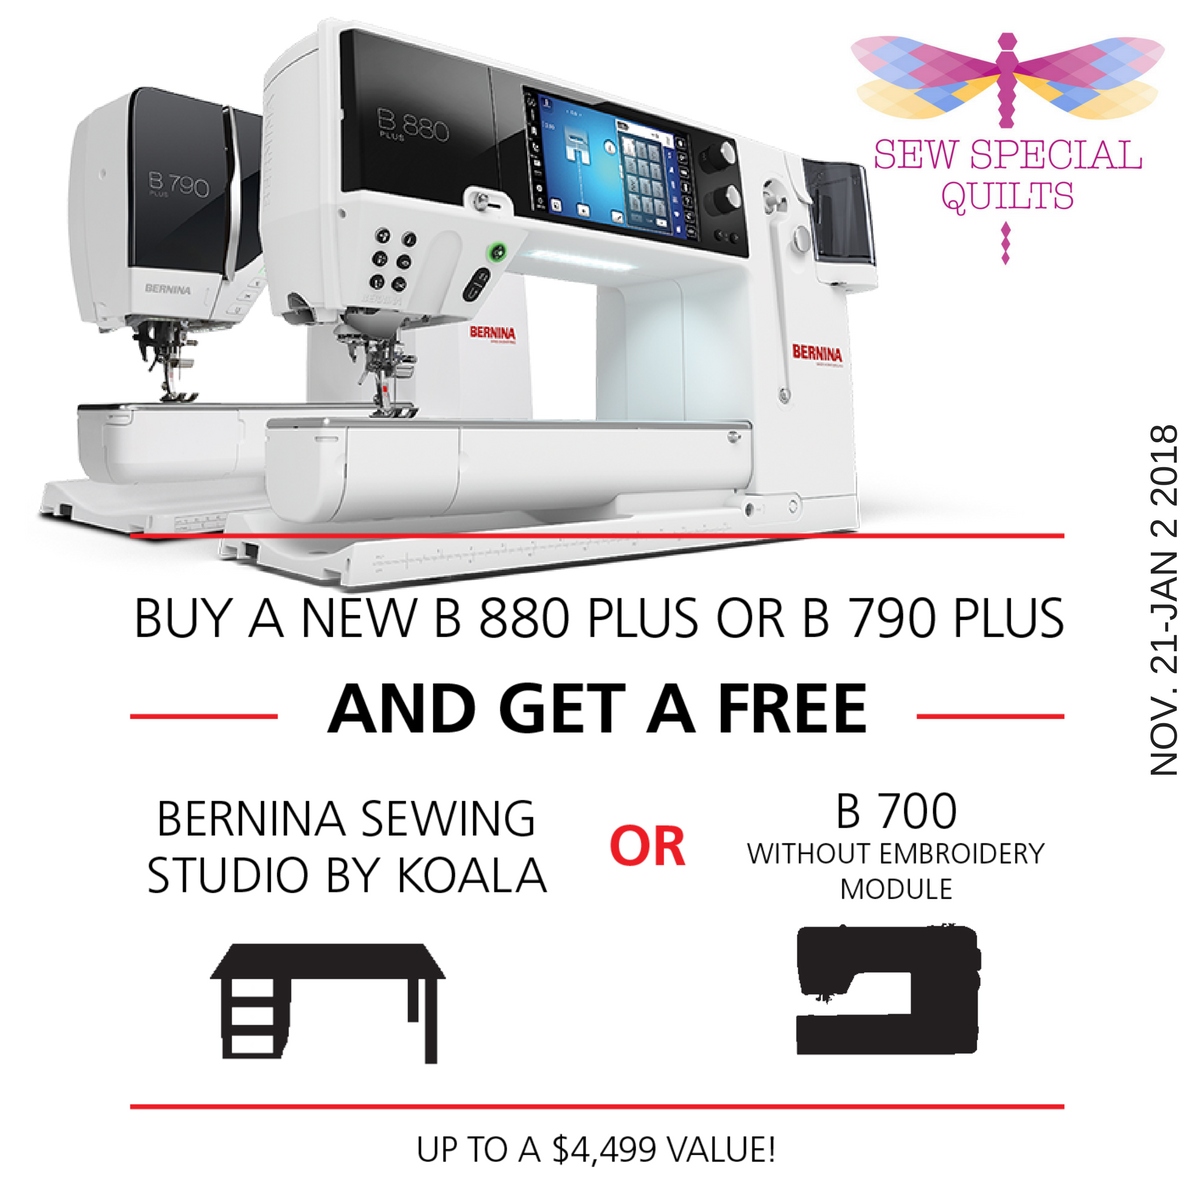 BERNINA Gift with Purchase